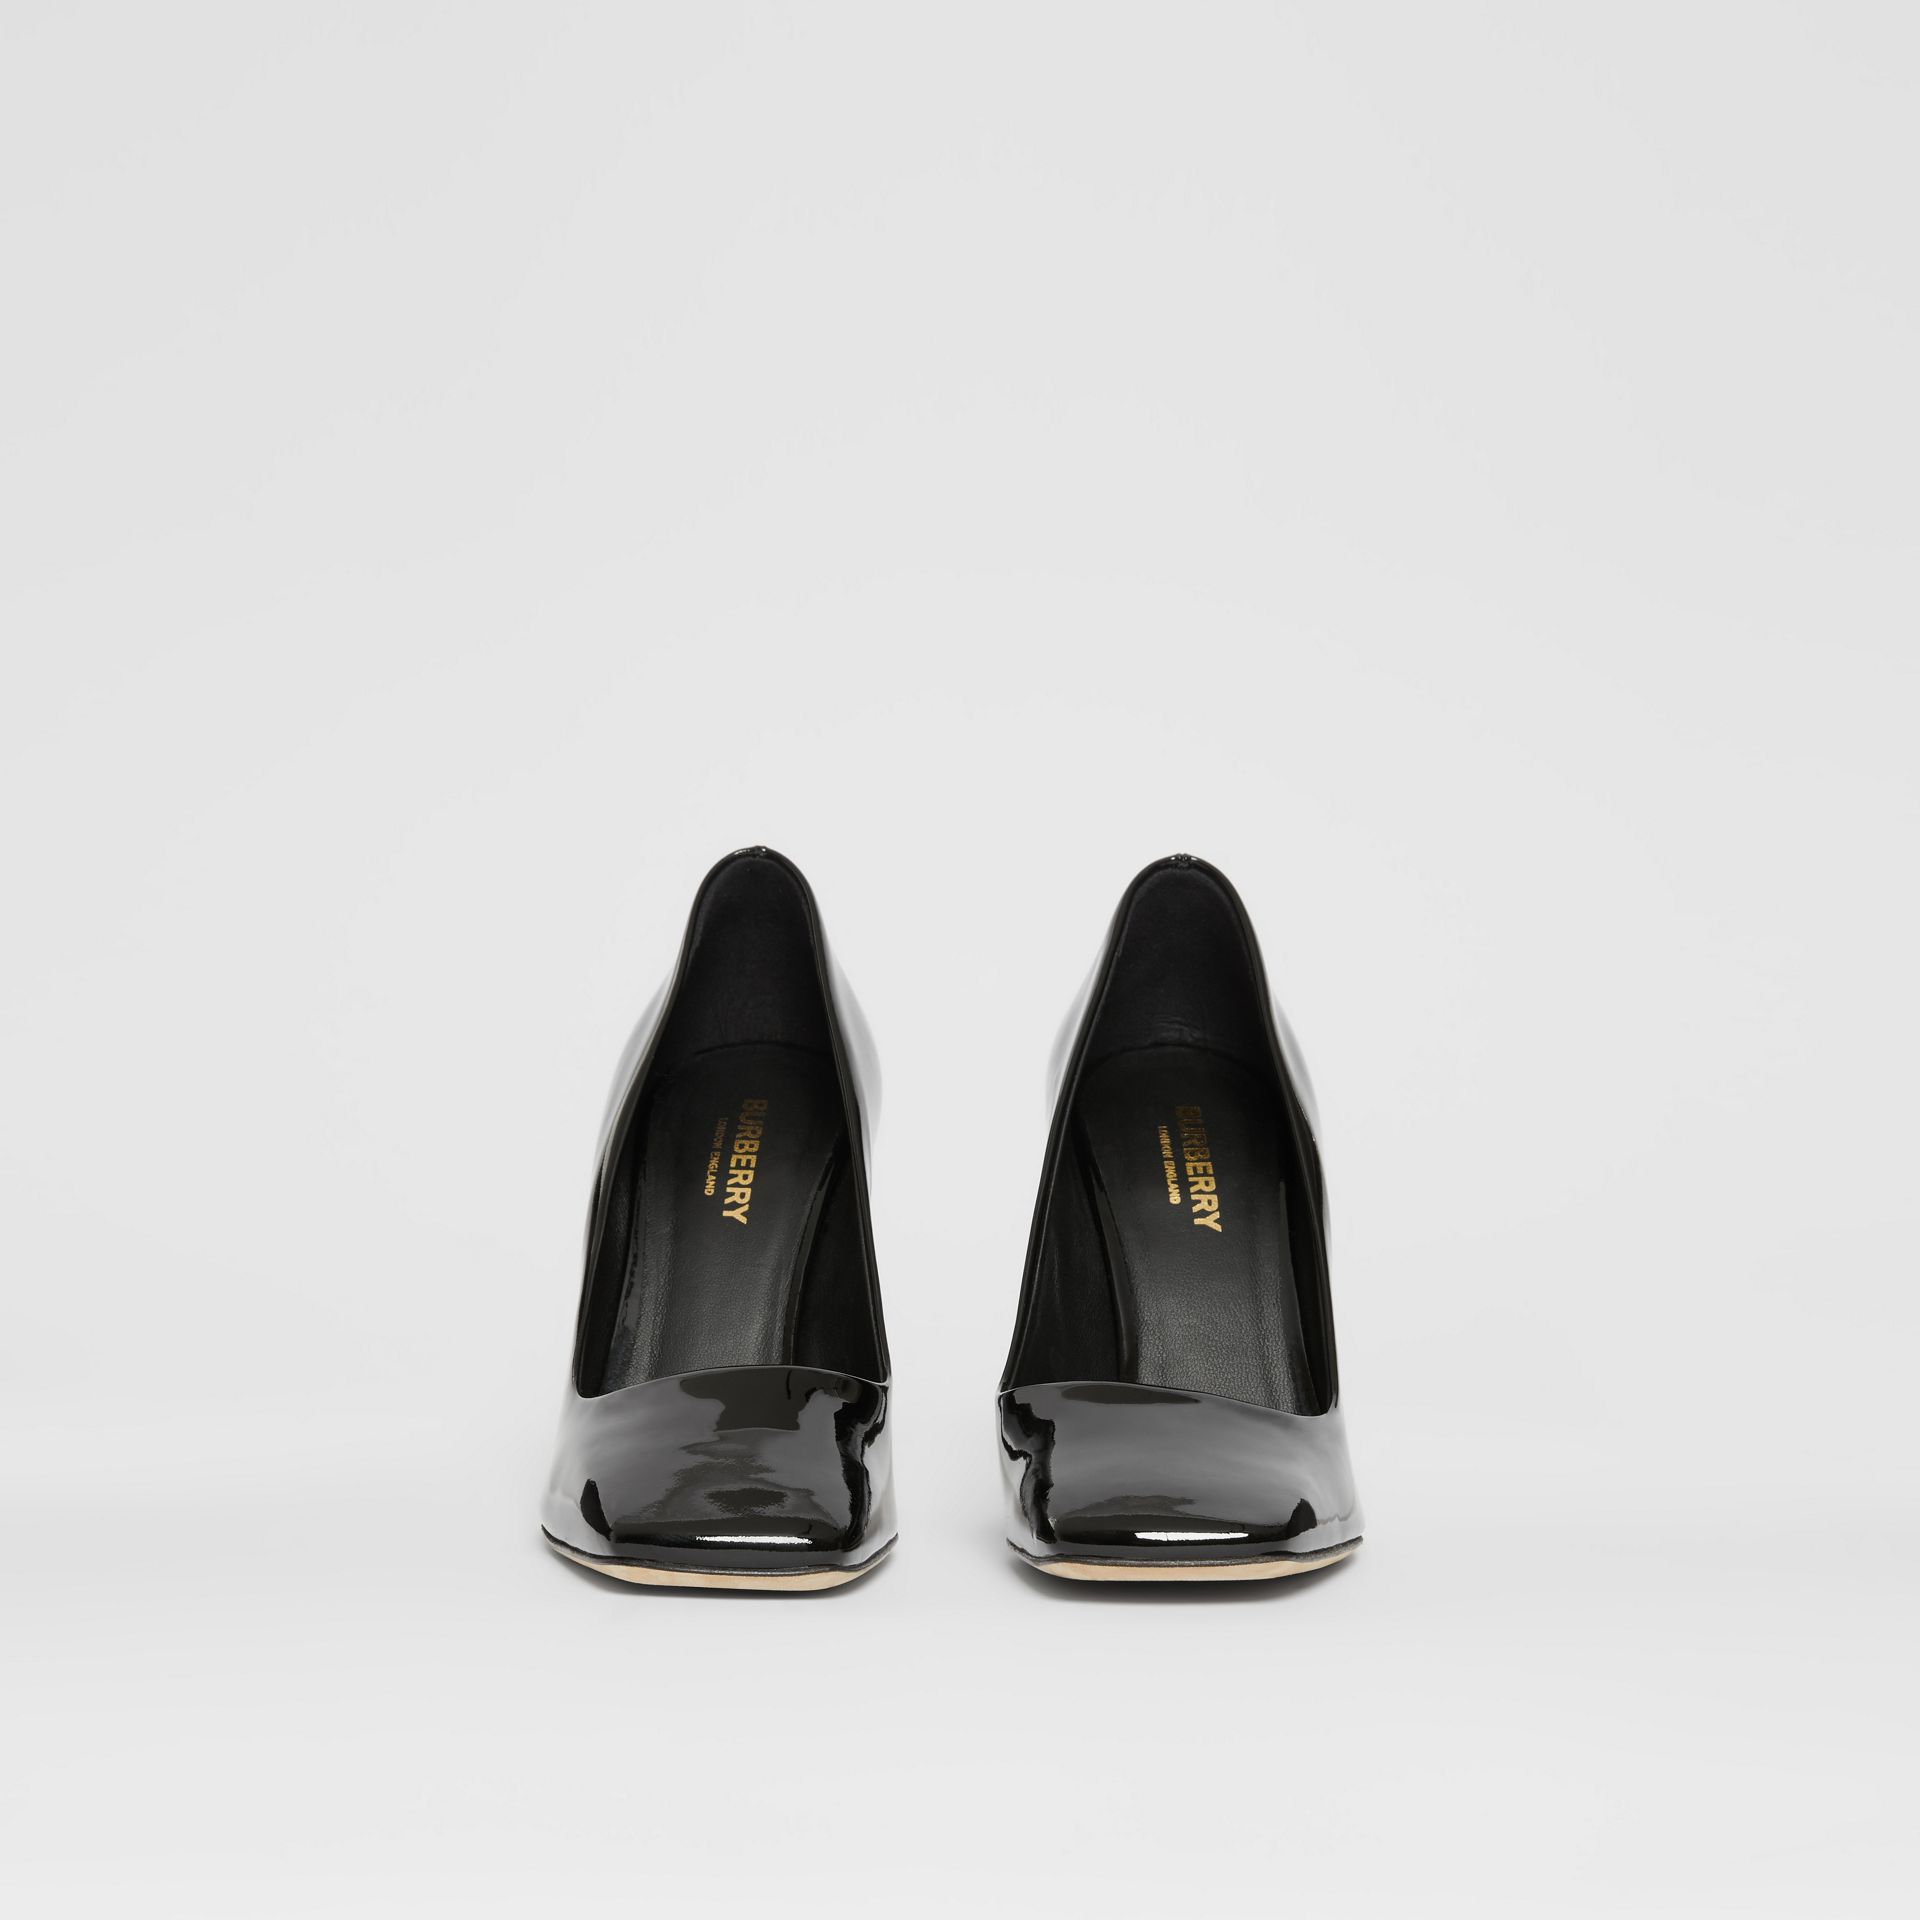 D-ring Detail Patent Leather Square-toe Pumps in Black - Women | Burberry Canada - gallery image 3